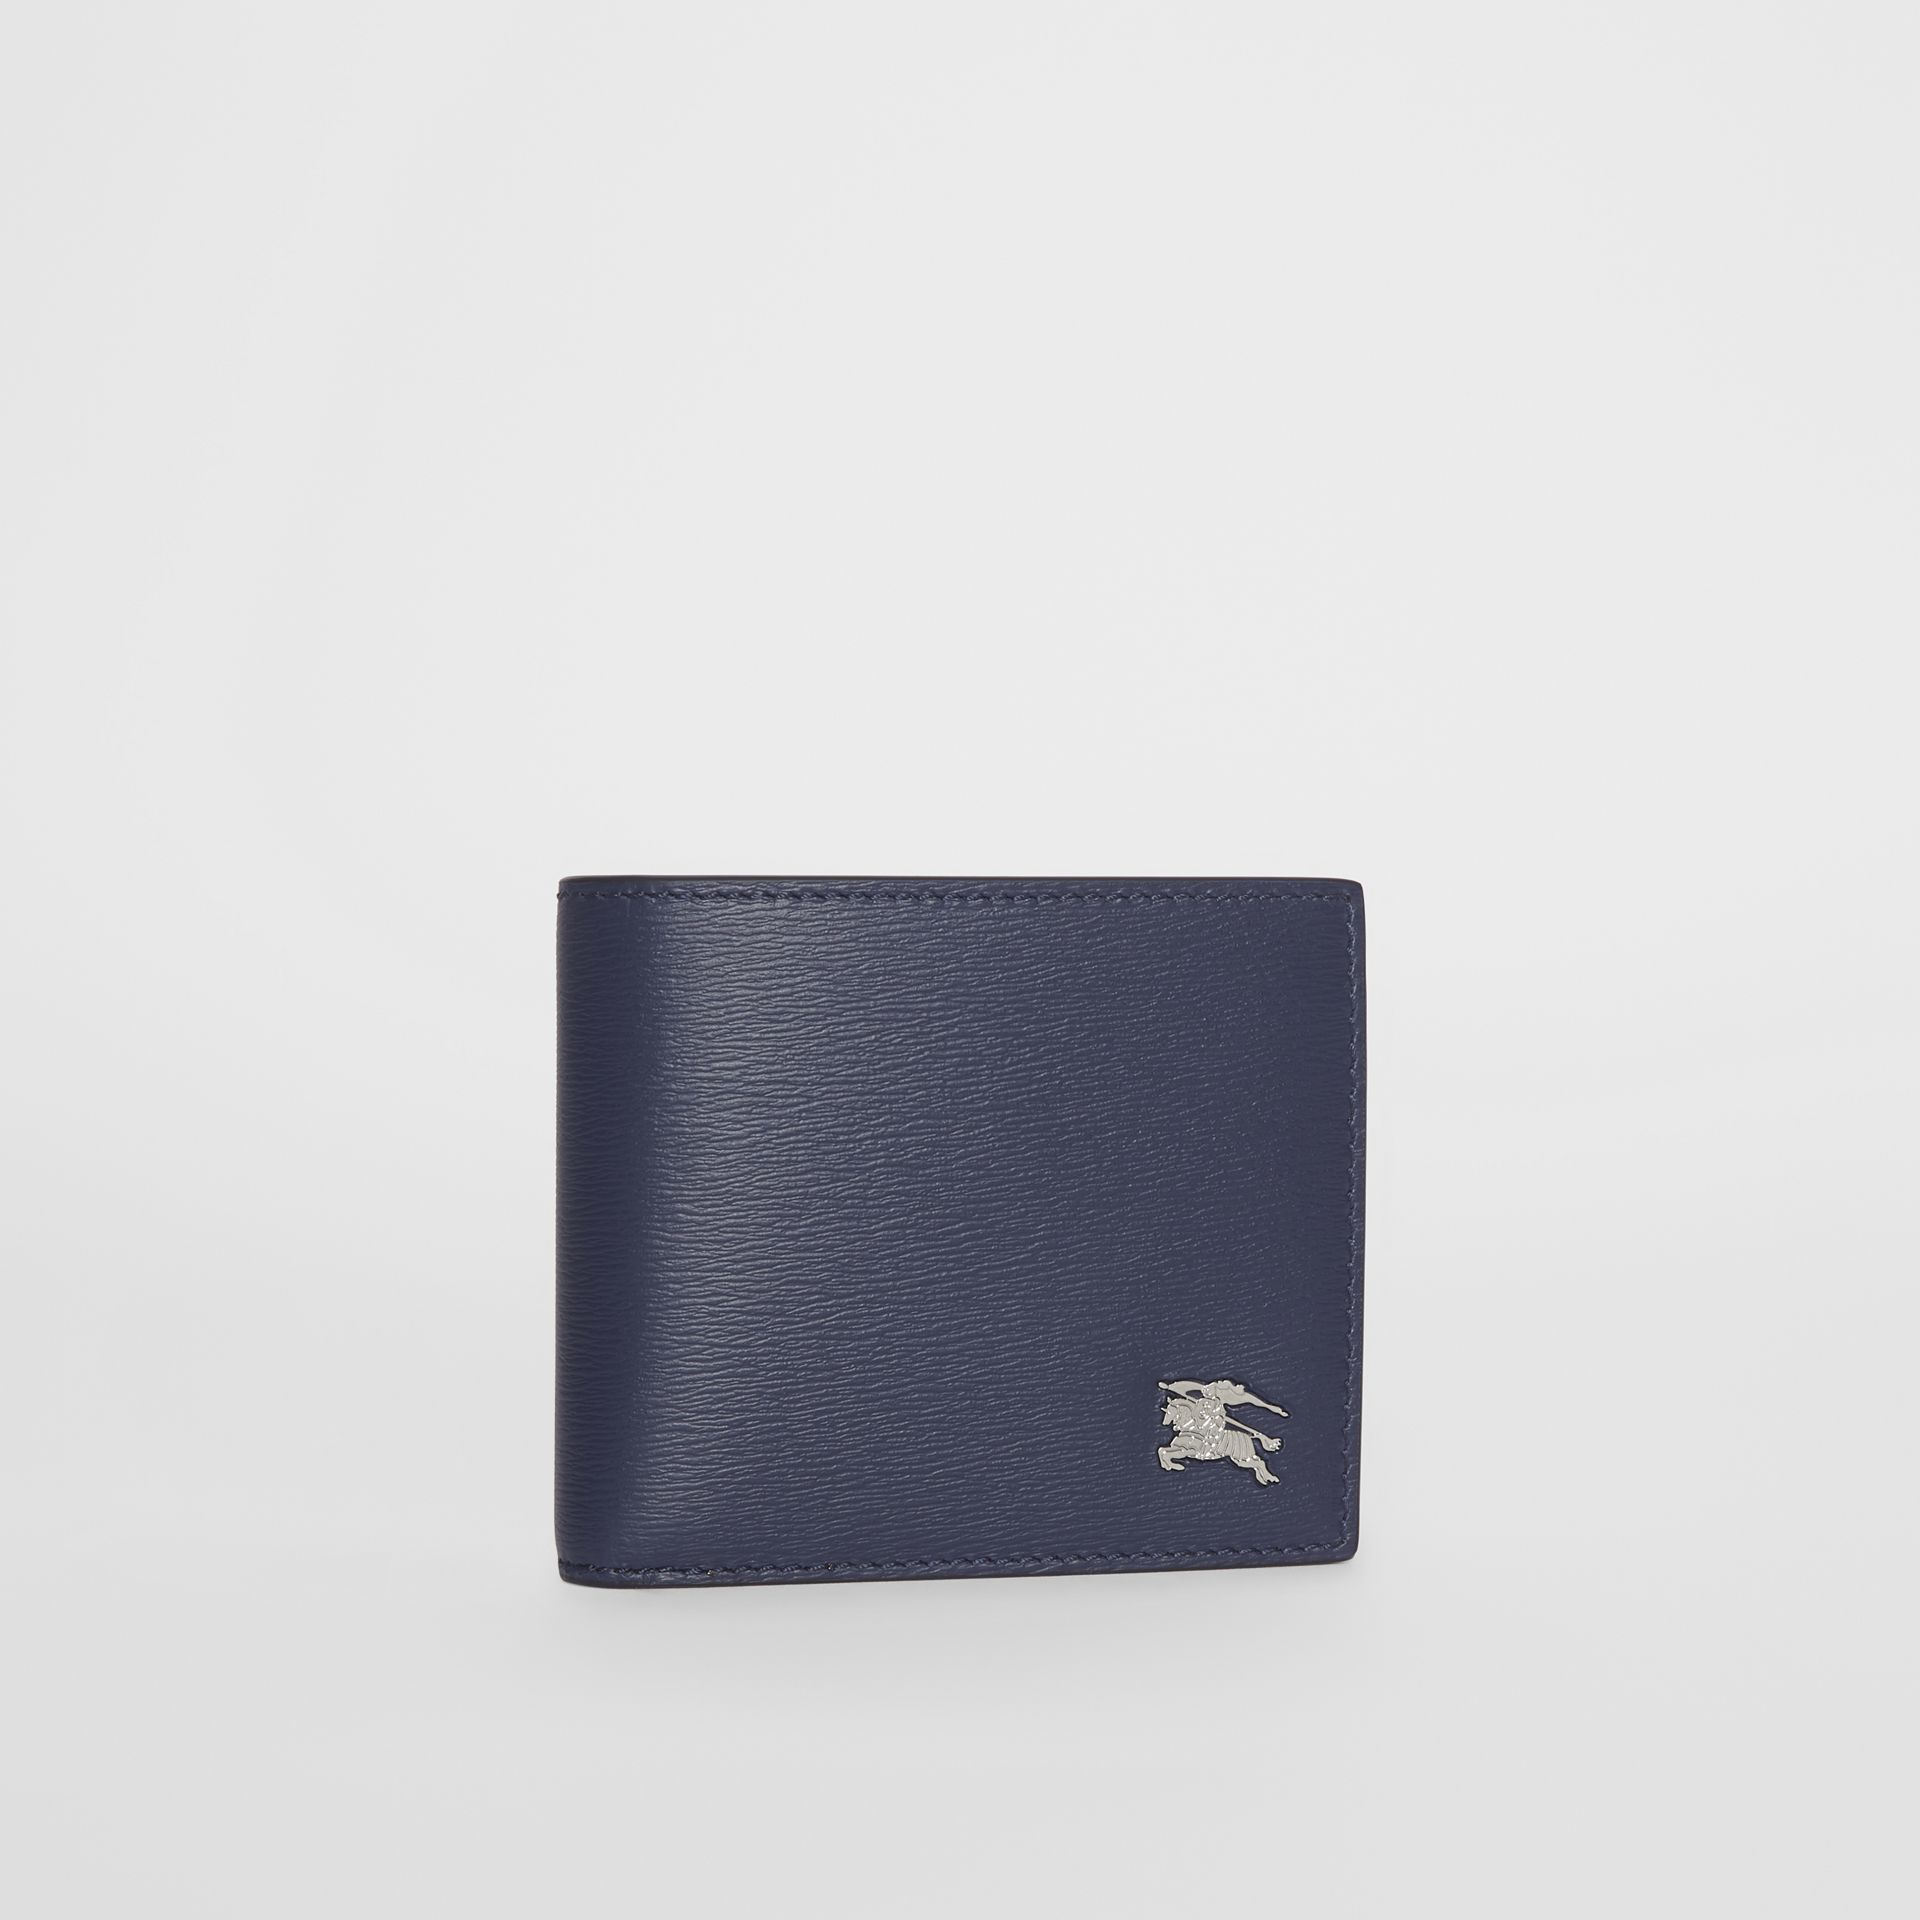 London Leather Bifold Wallet with ID Card Case in Navy - Men | Burberry Singapore - gallery image 3